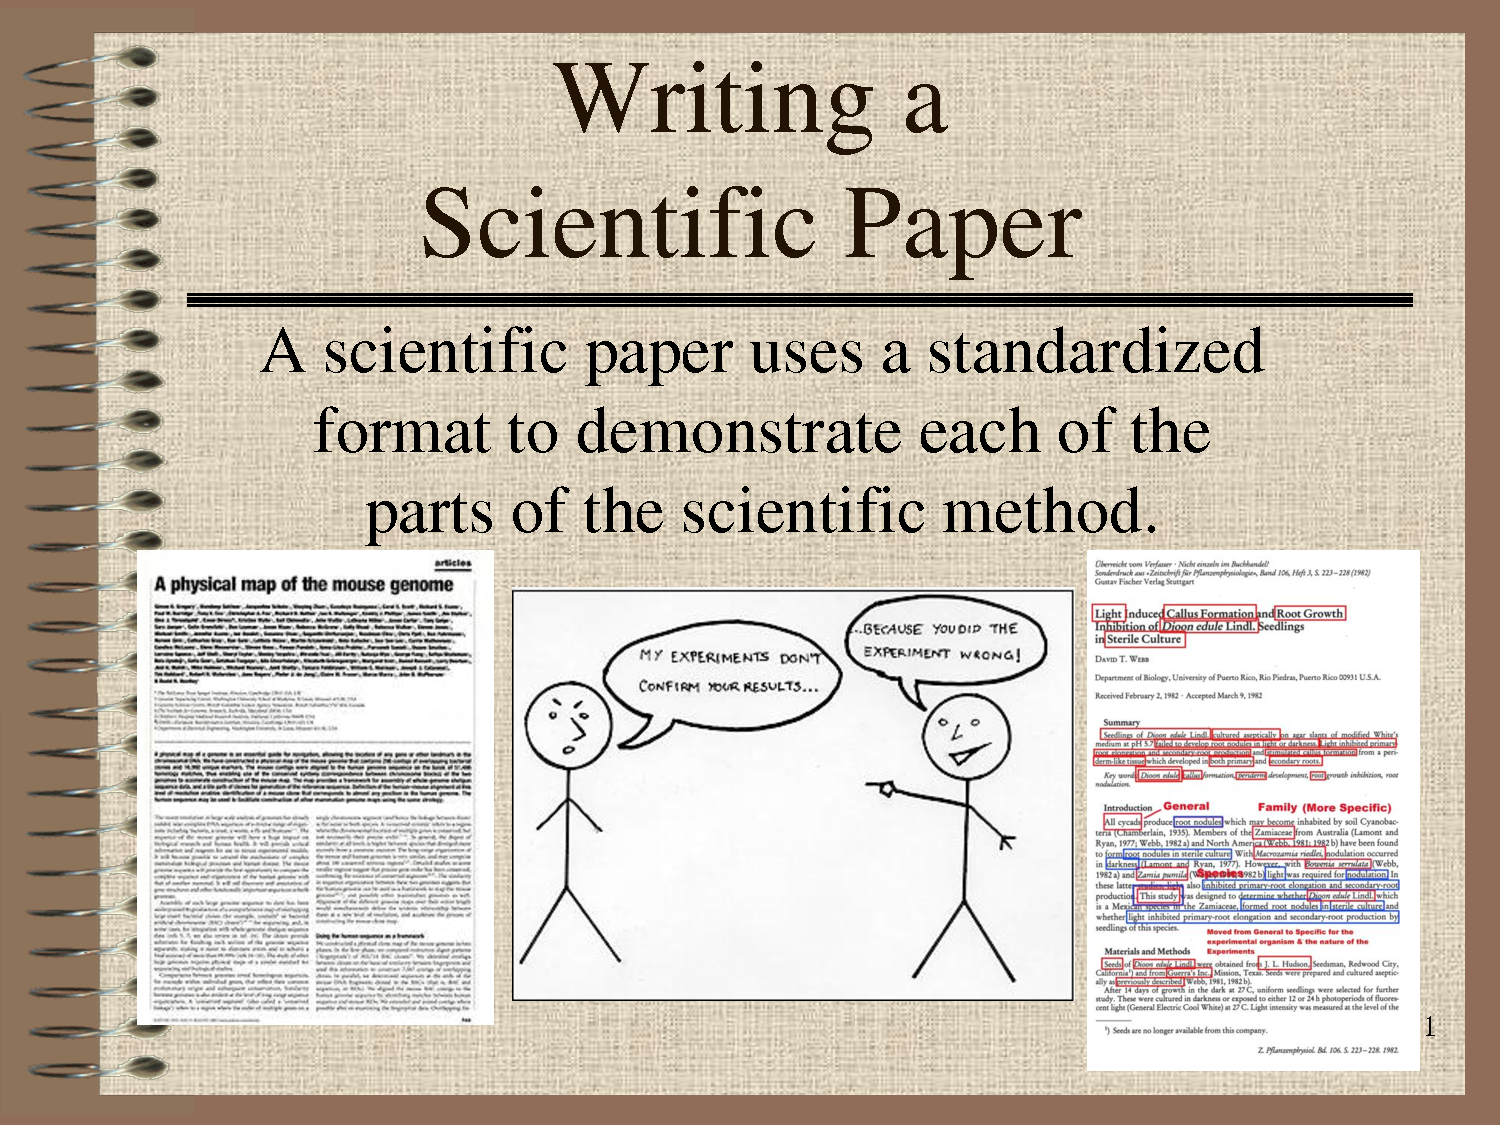 how to write a biological research paper The purpose of this guide is to provide advice on how to develop and organize a research paper in the social sciences  write the discussion section of your paper .